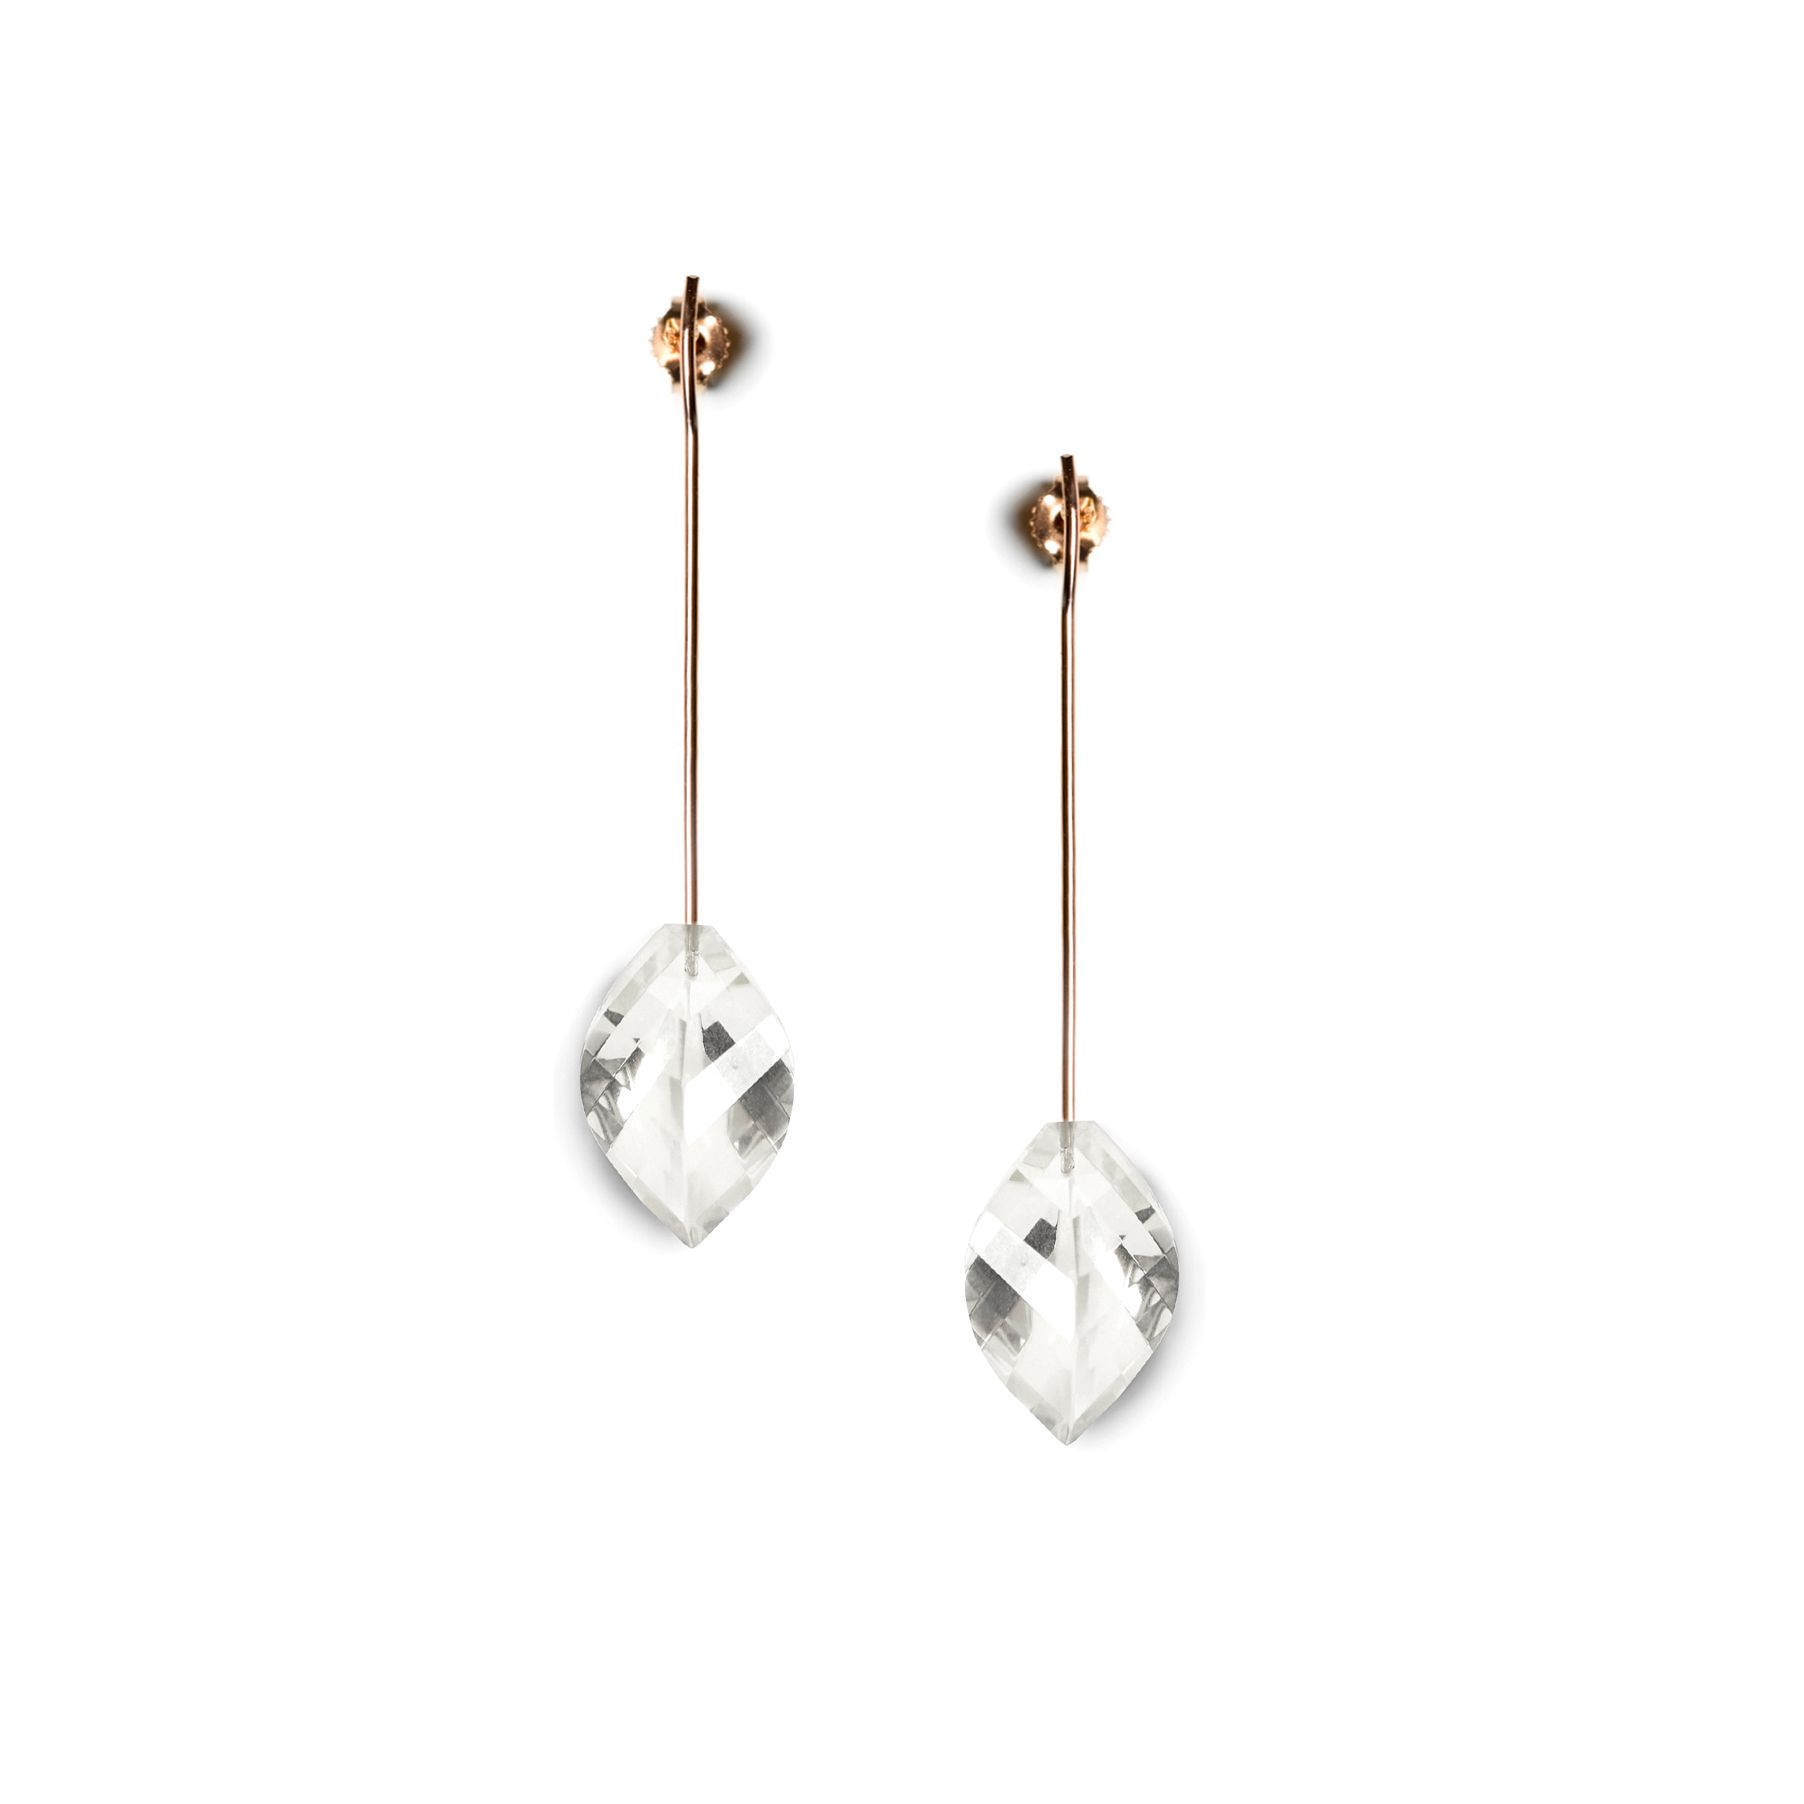 Rose gold 'Amo' earrings pink gold earrings with crystals